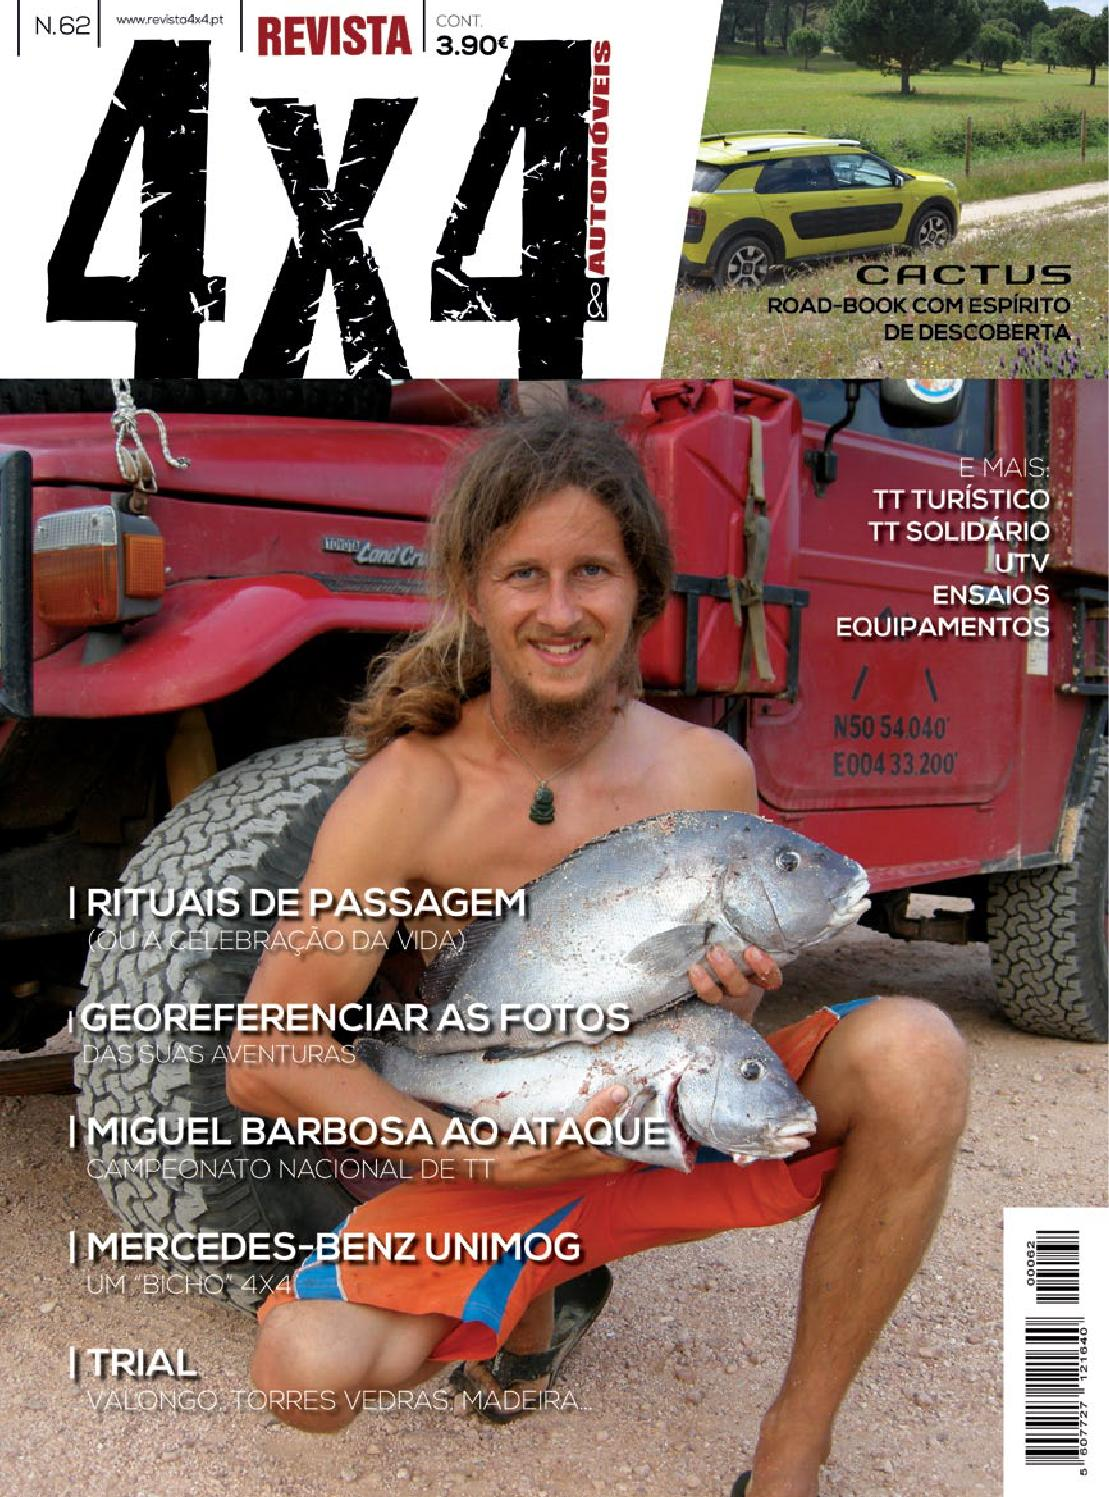 4x4 62 1ssue by Global Expedition - issuu